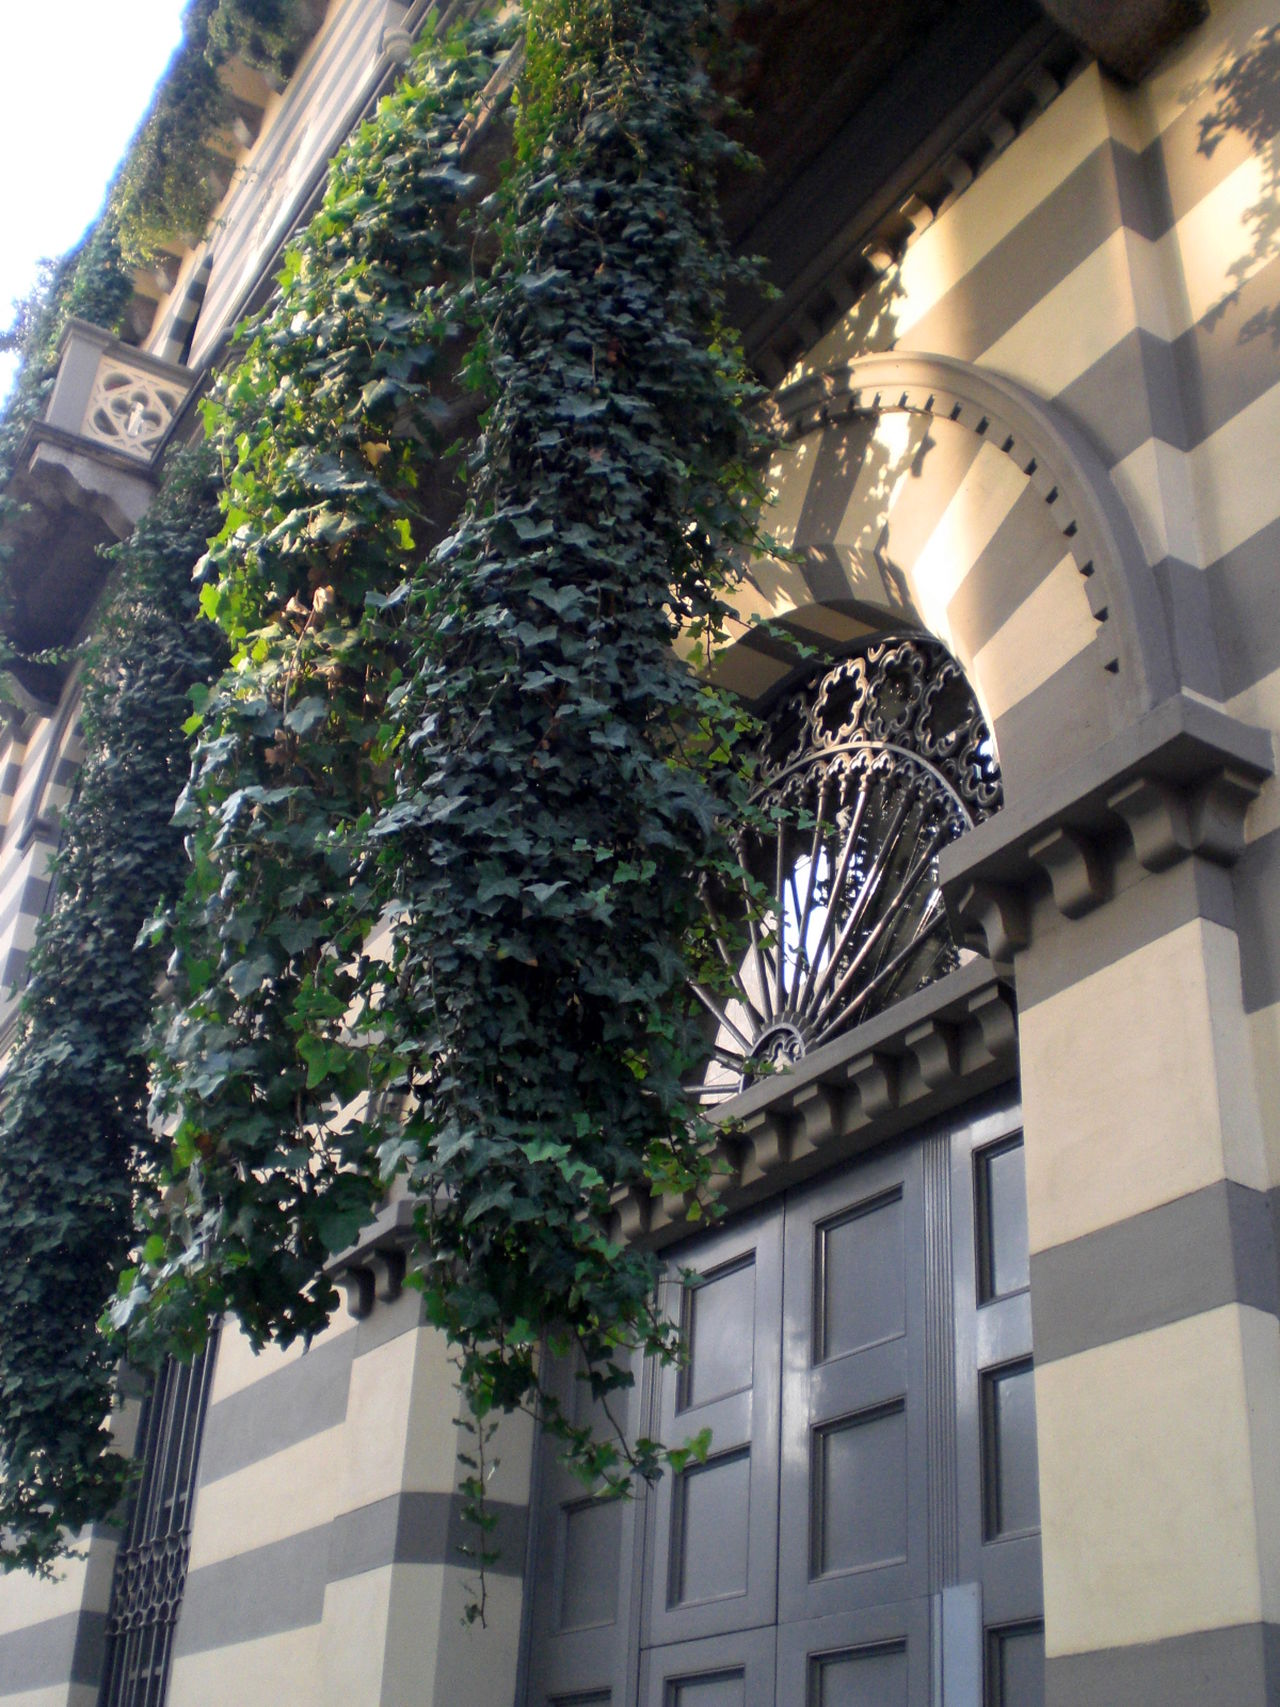 Adapted To The City Balcony Building Exterior Covered Wall Day Doorway Façade Ivy